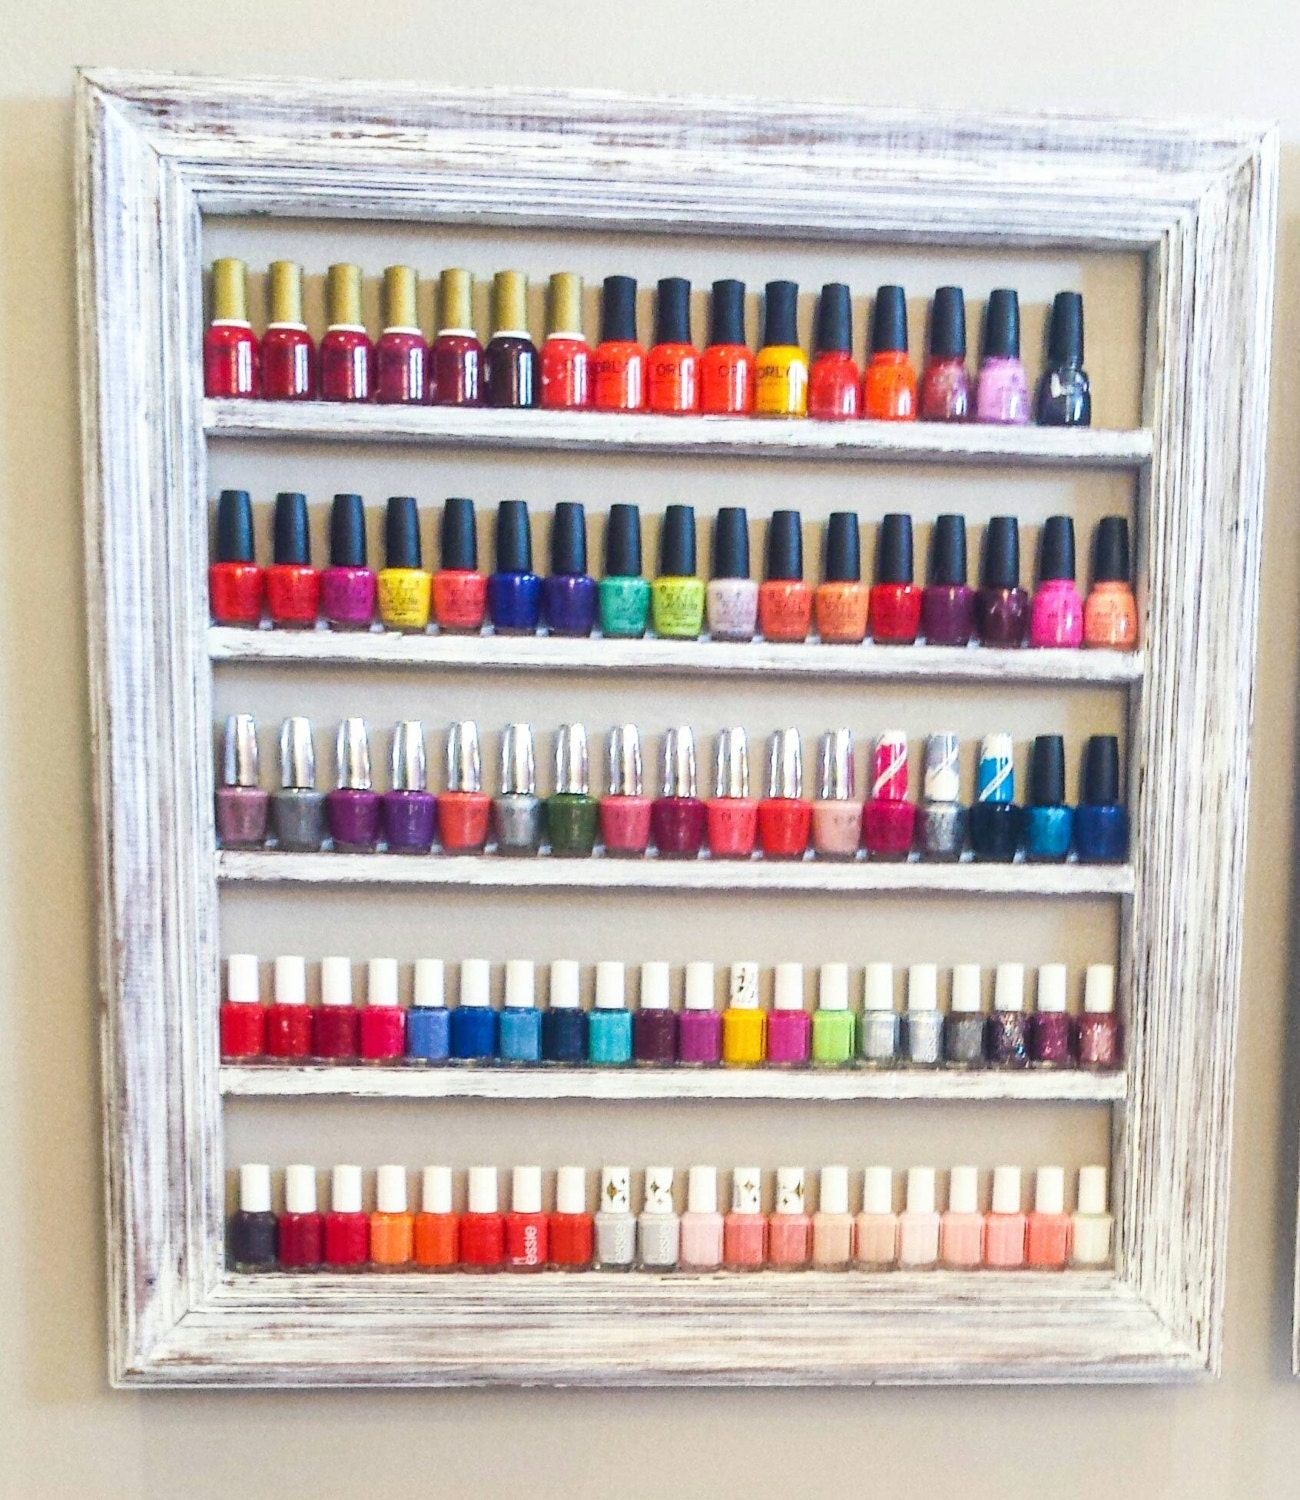 Beauty Salon Decor Nail Polish Shelf Essential Oils Shelf